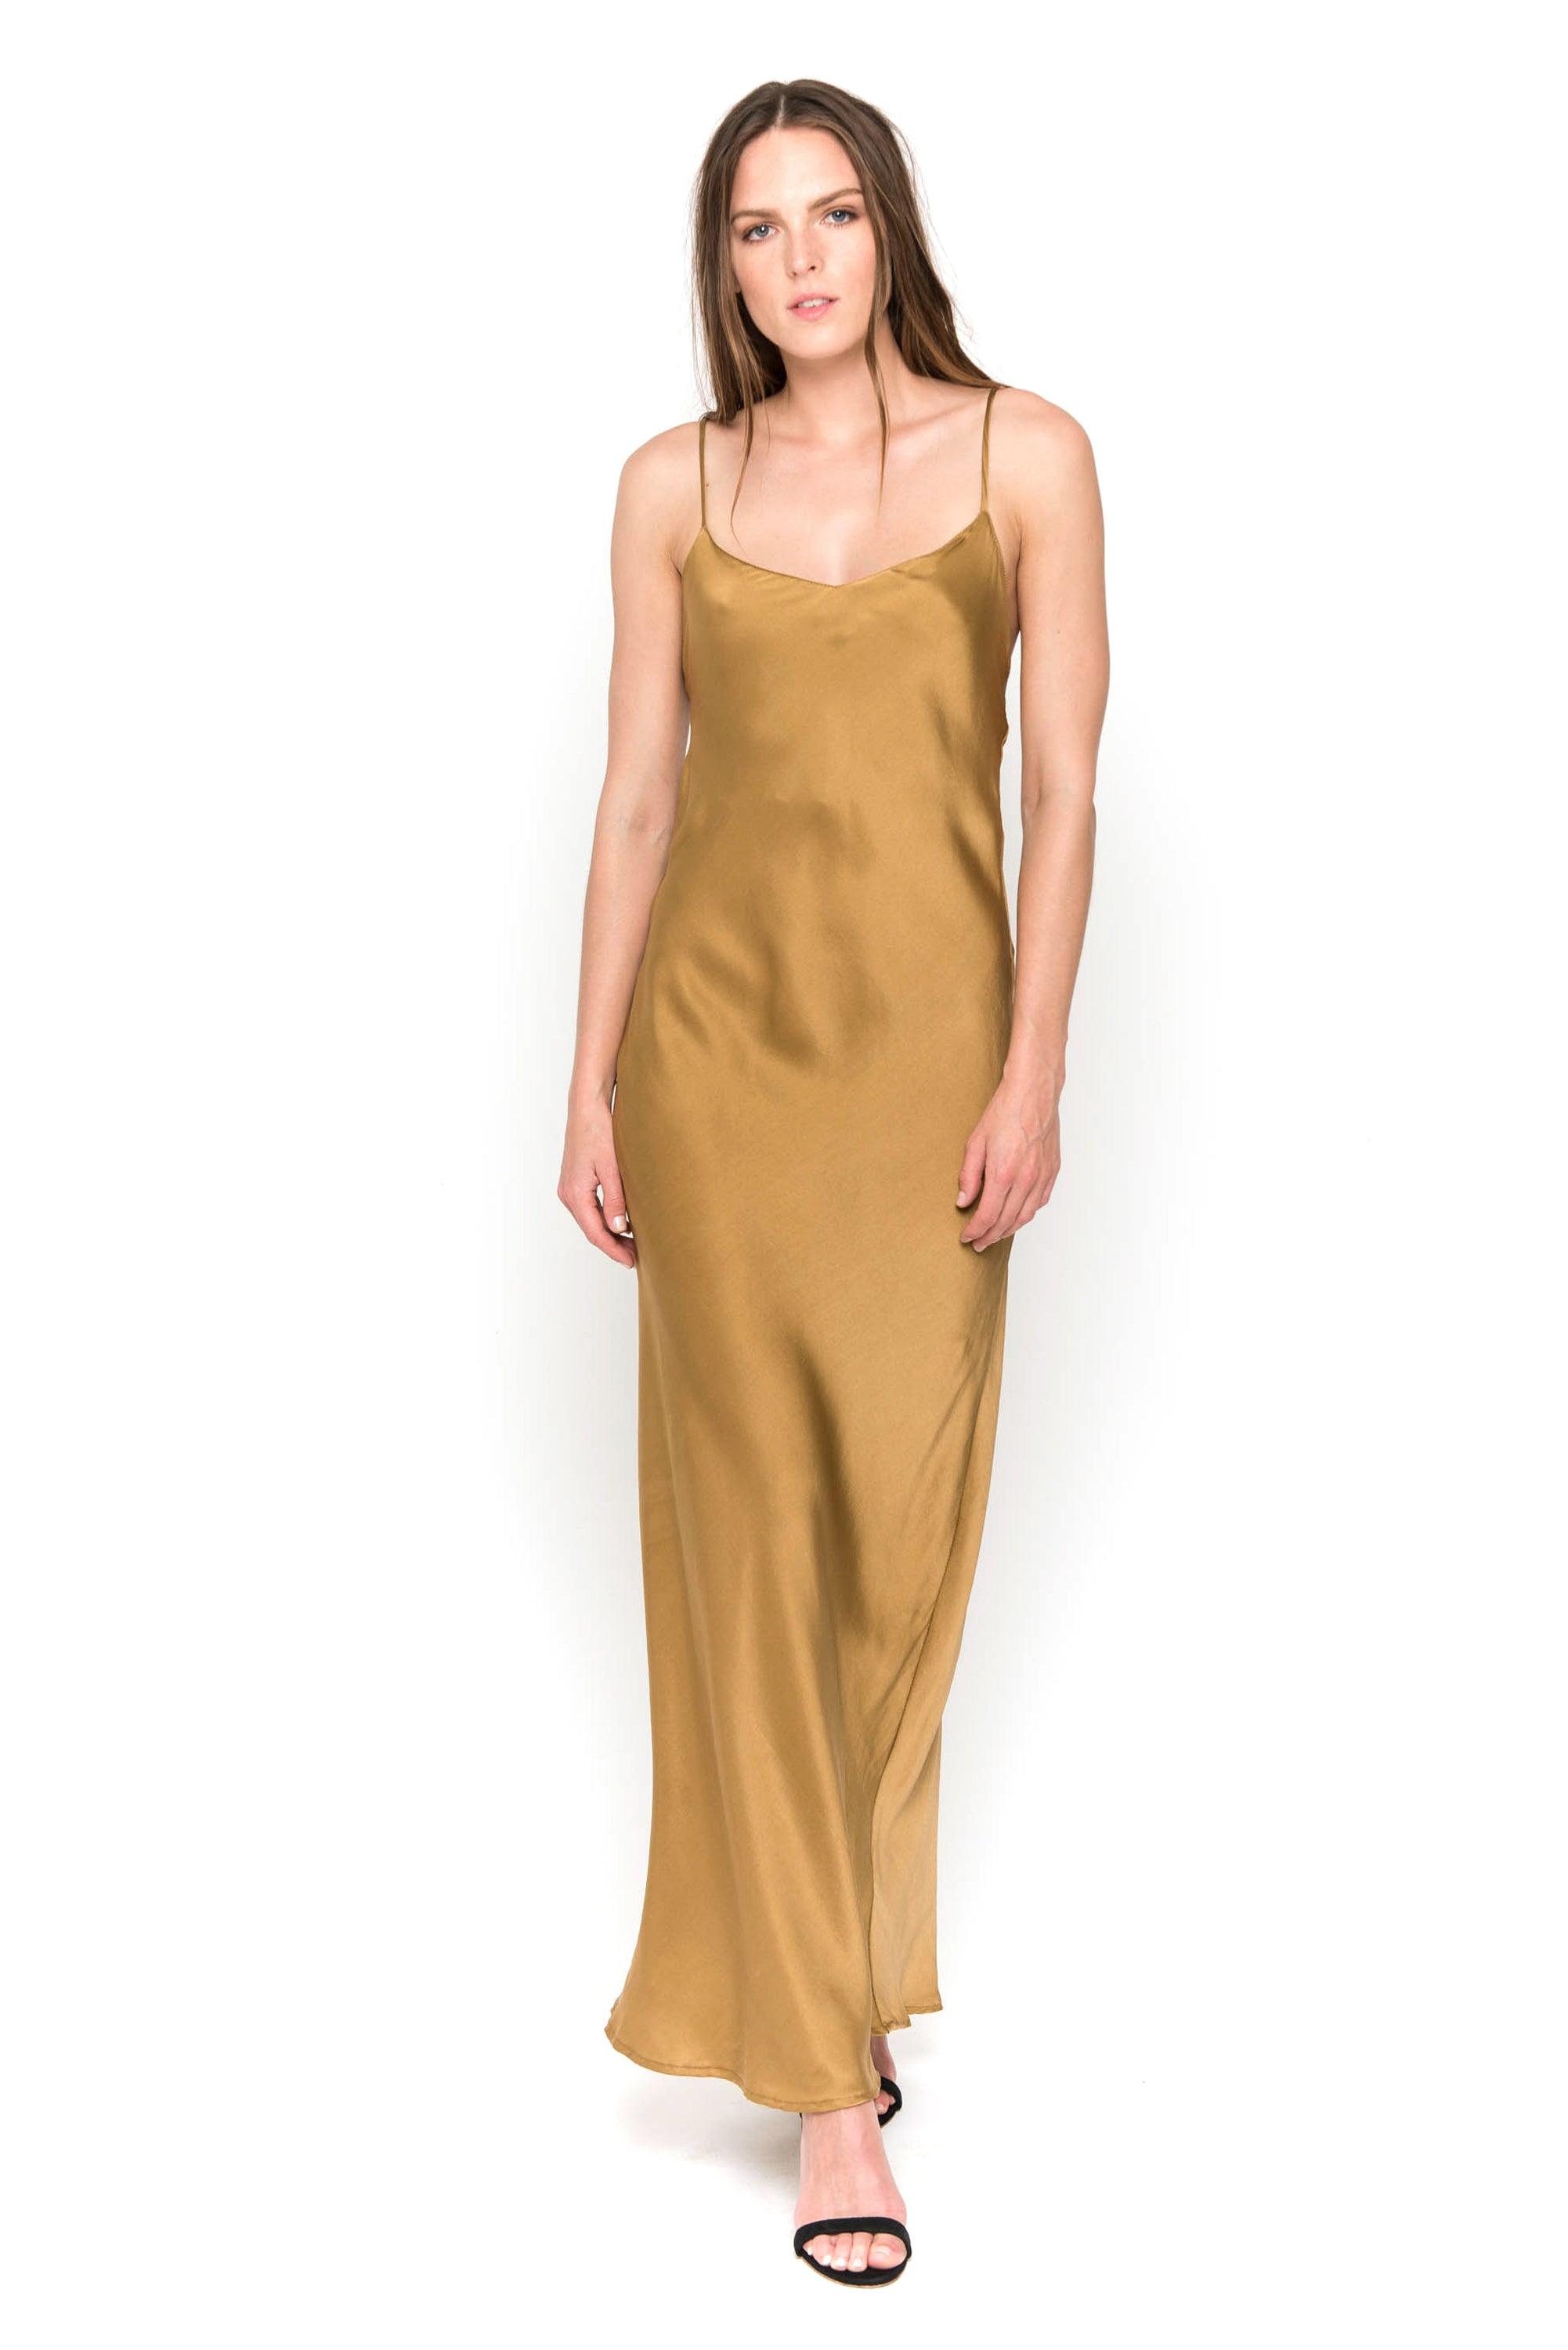 0c7b30bda59d38 gold maxi camisole dress front